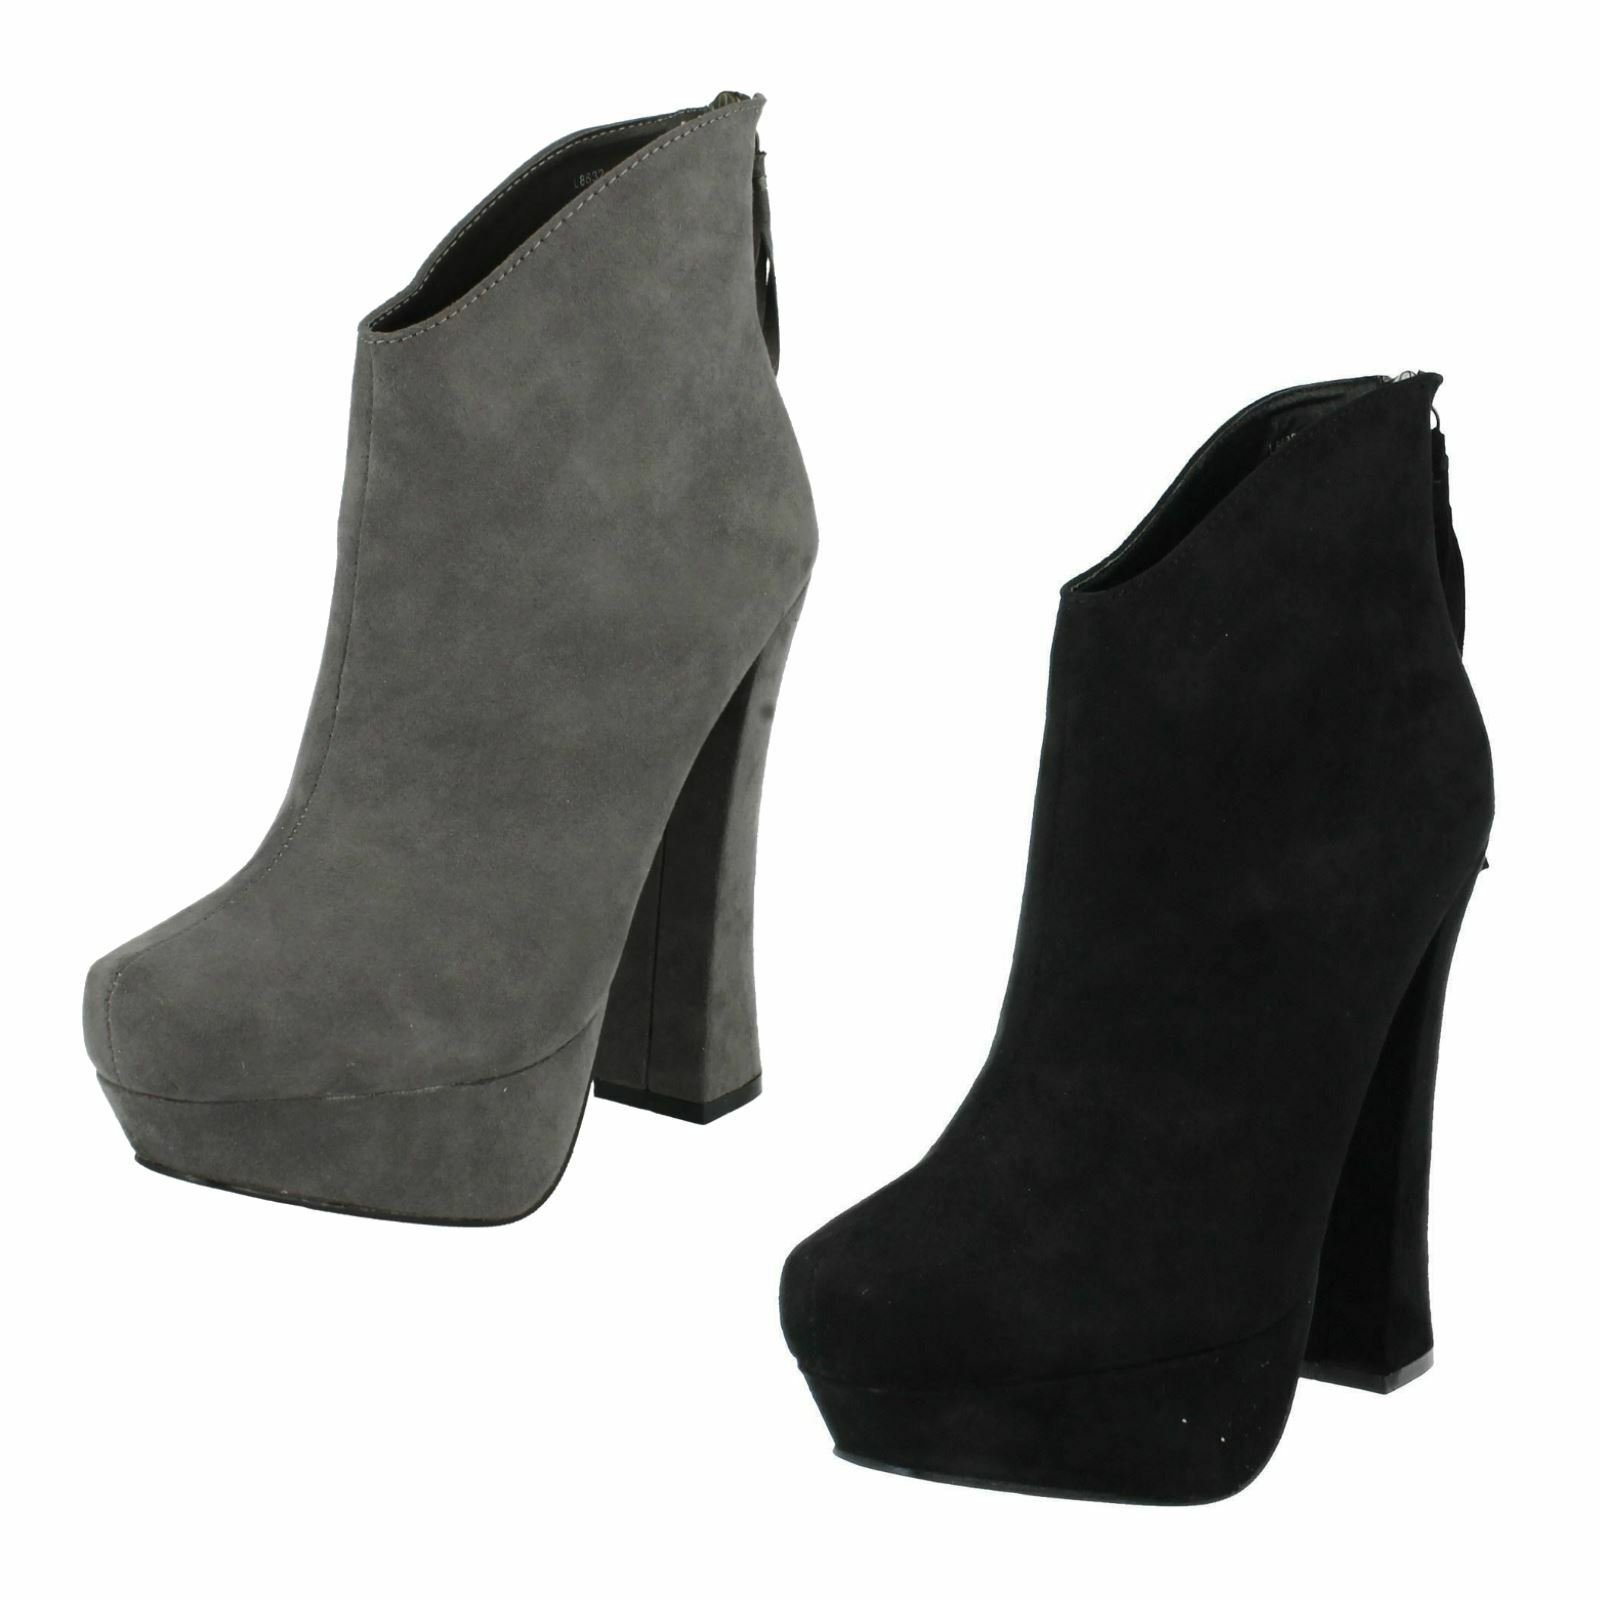 Ladies Coco Heeled Ankle Boots The Style - L8632